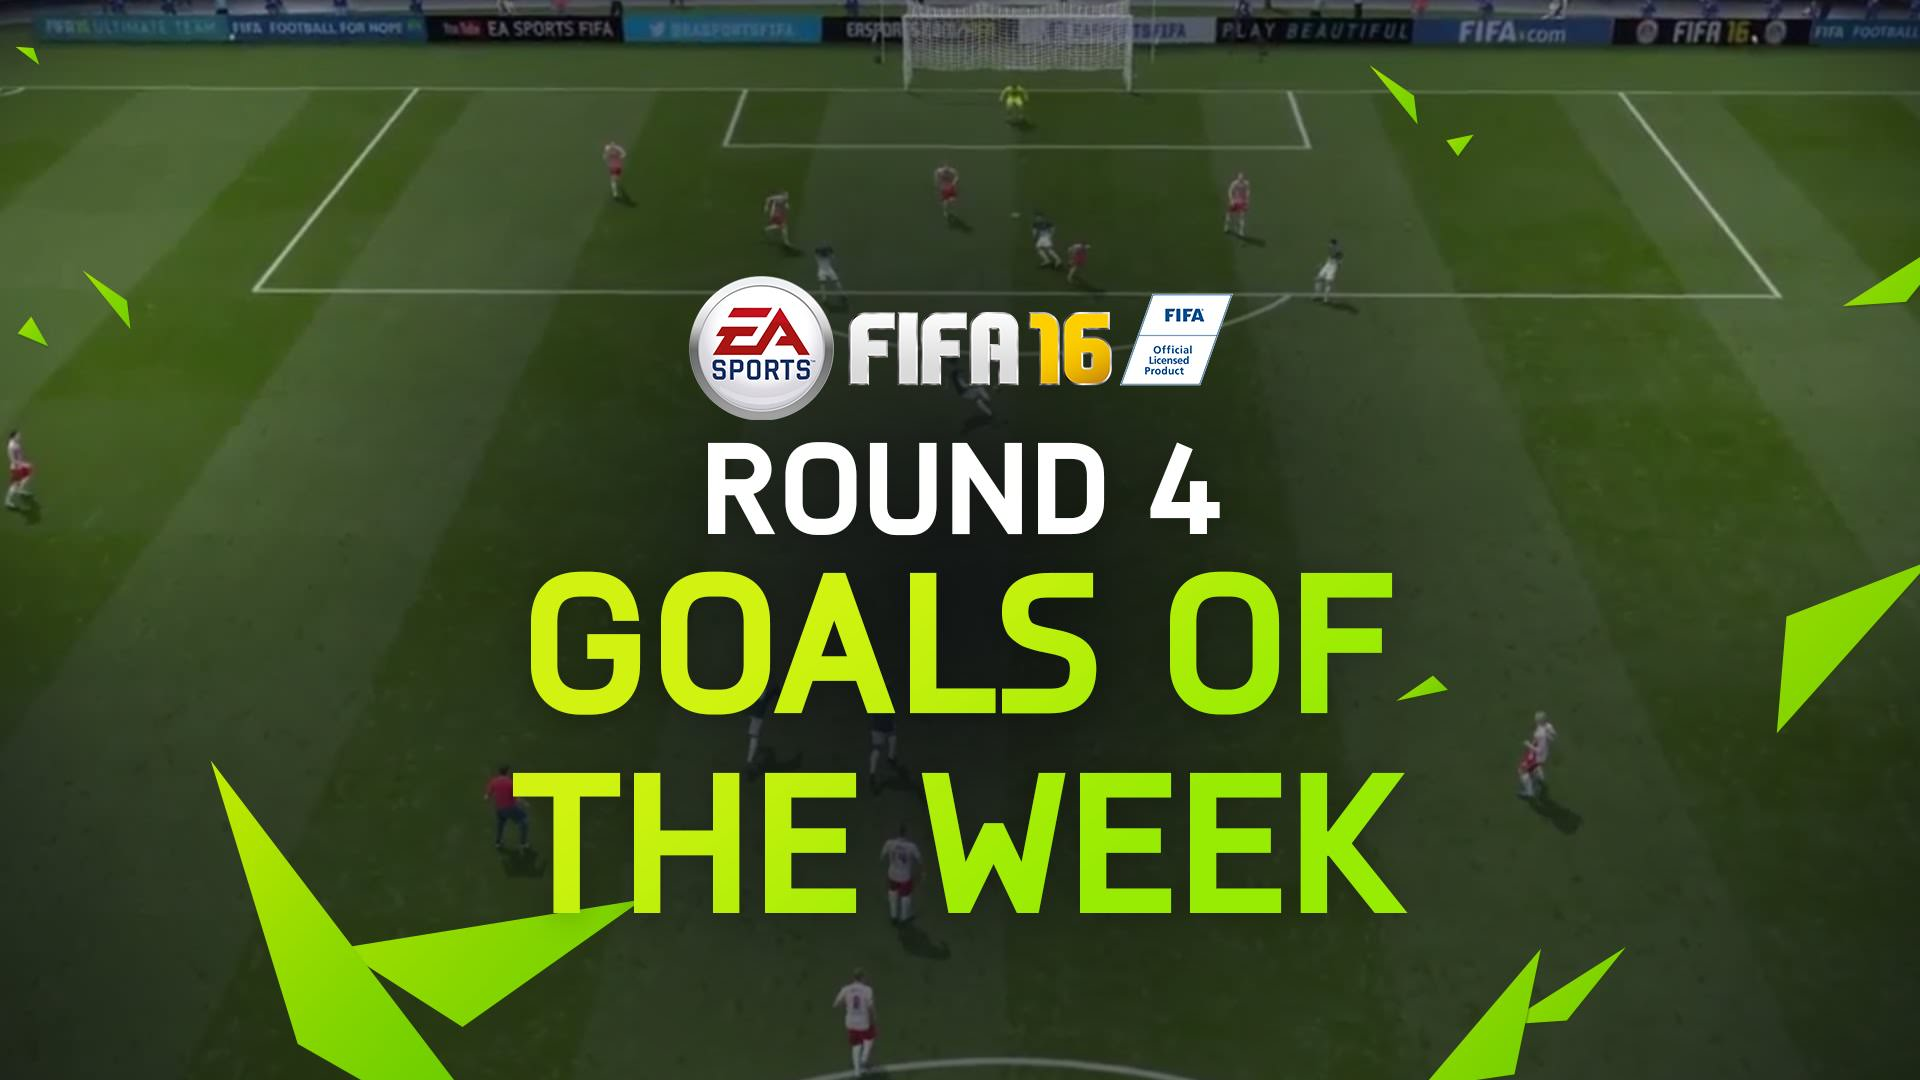 FIFA 16 Goals of the Week 4